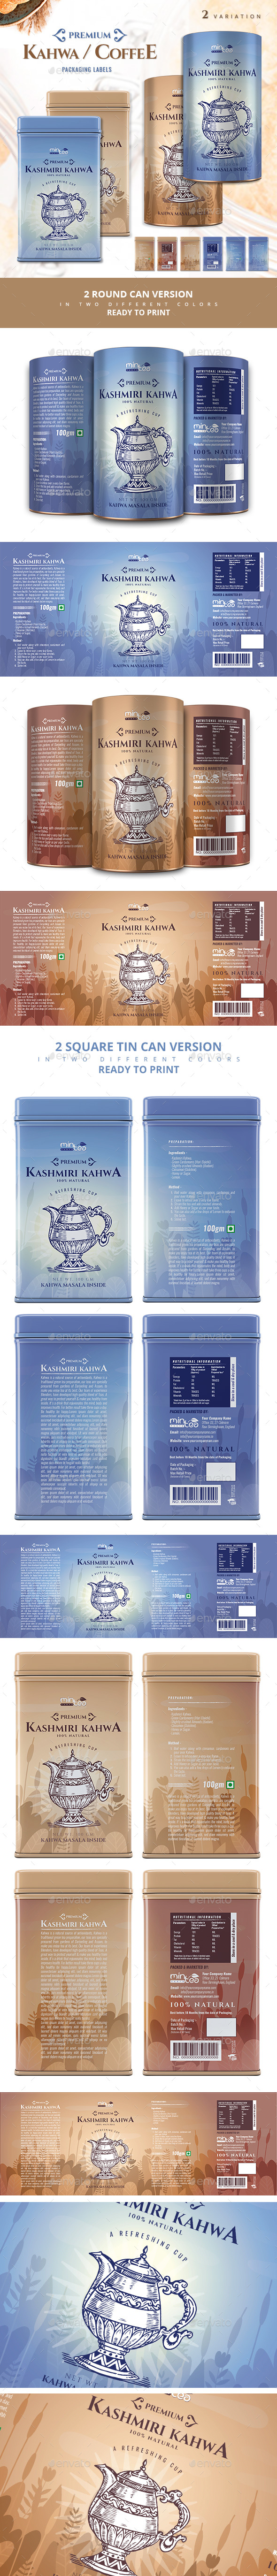 Kahwa / Coffee Packaging